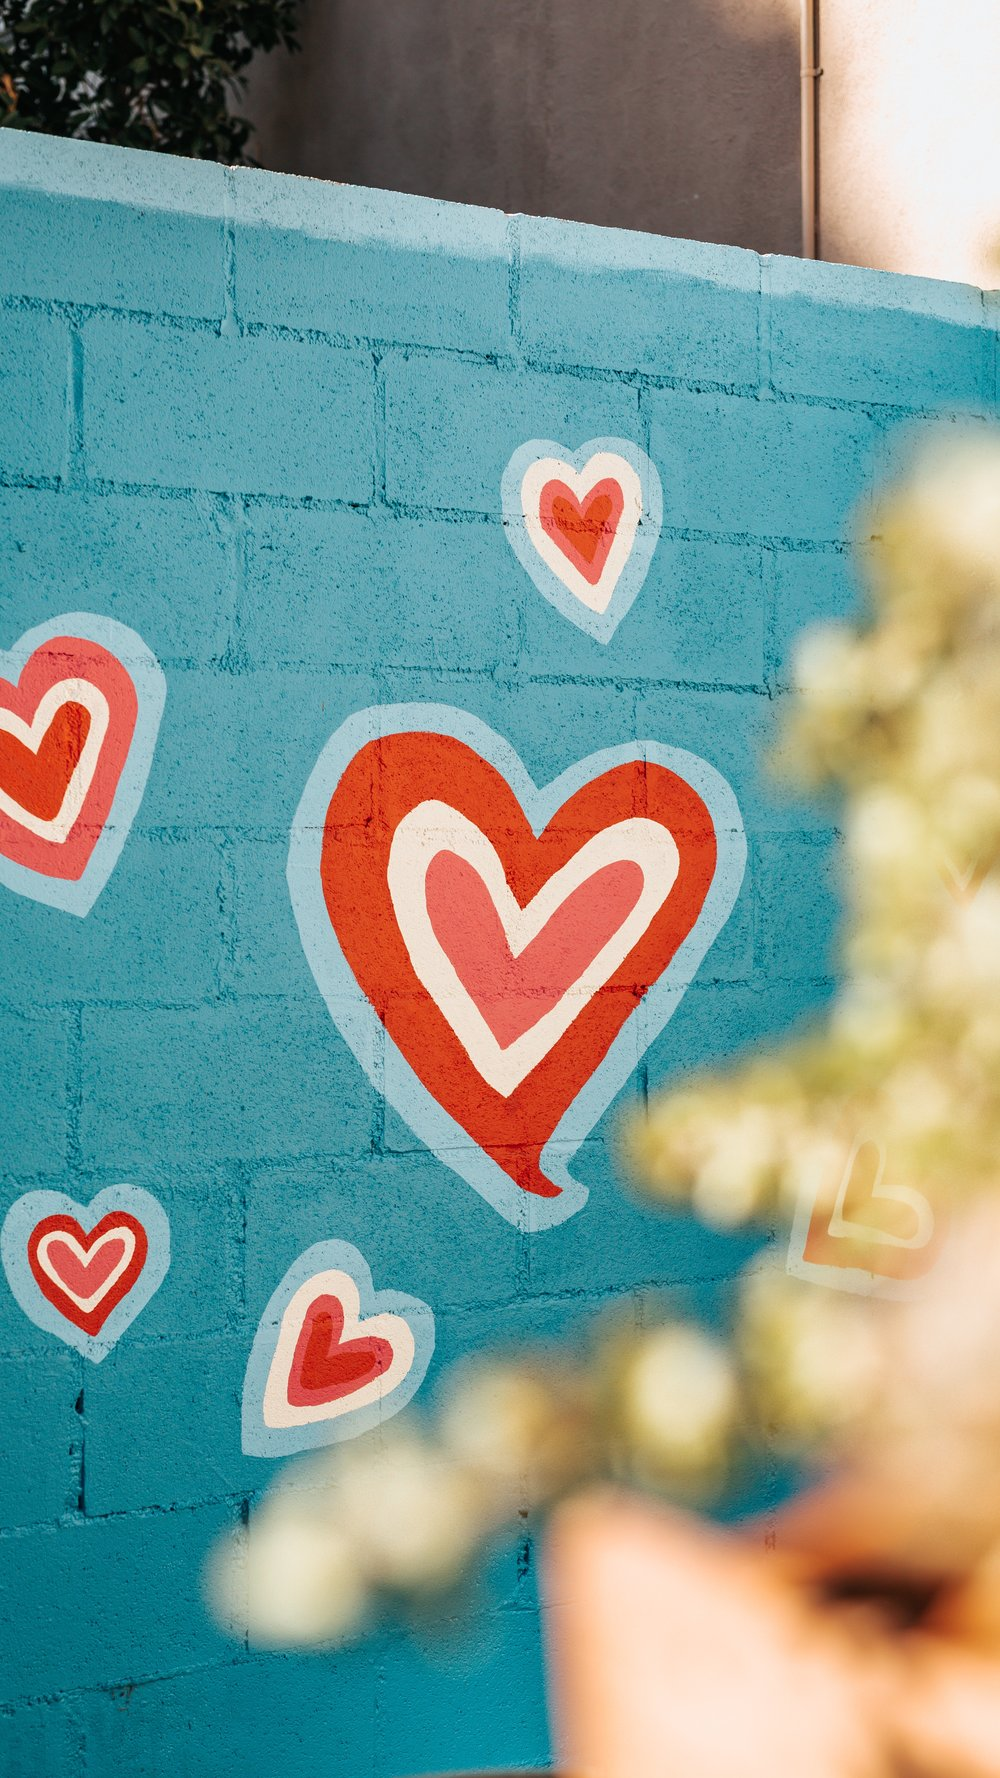 painted hearts photo RHU.jpg